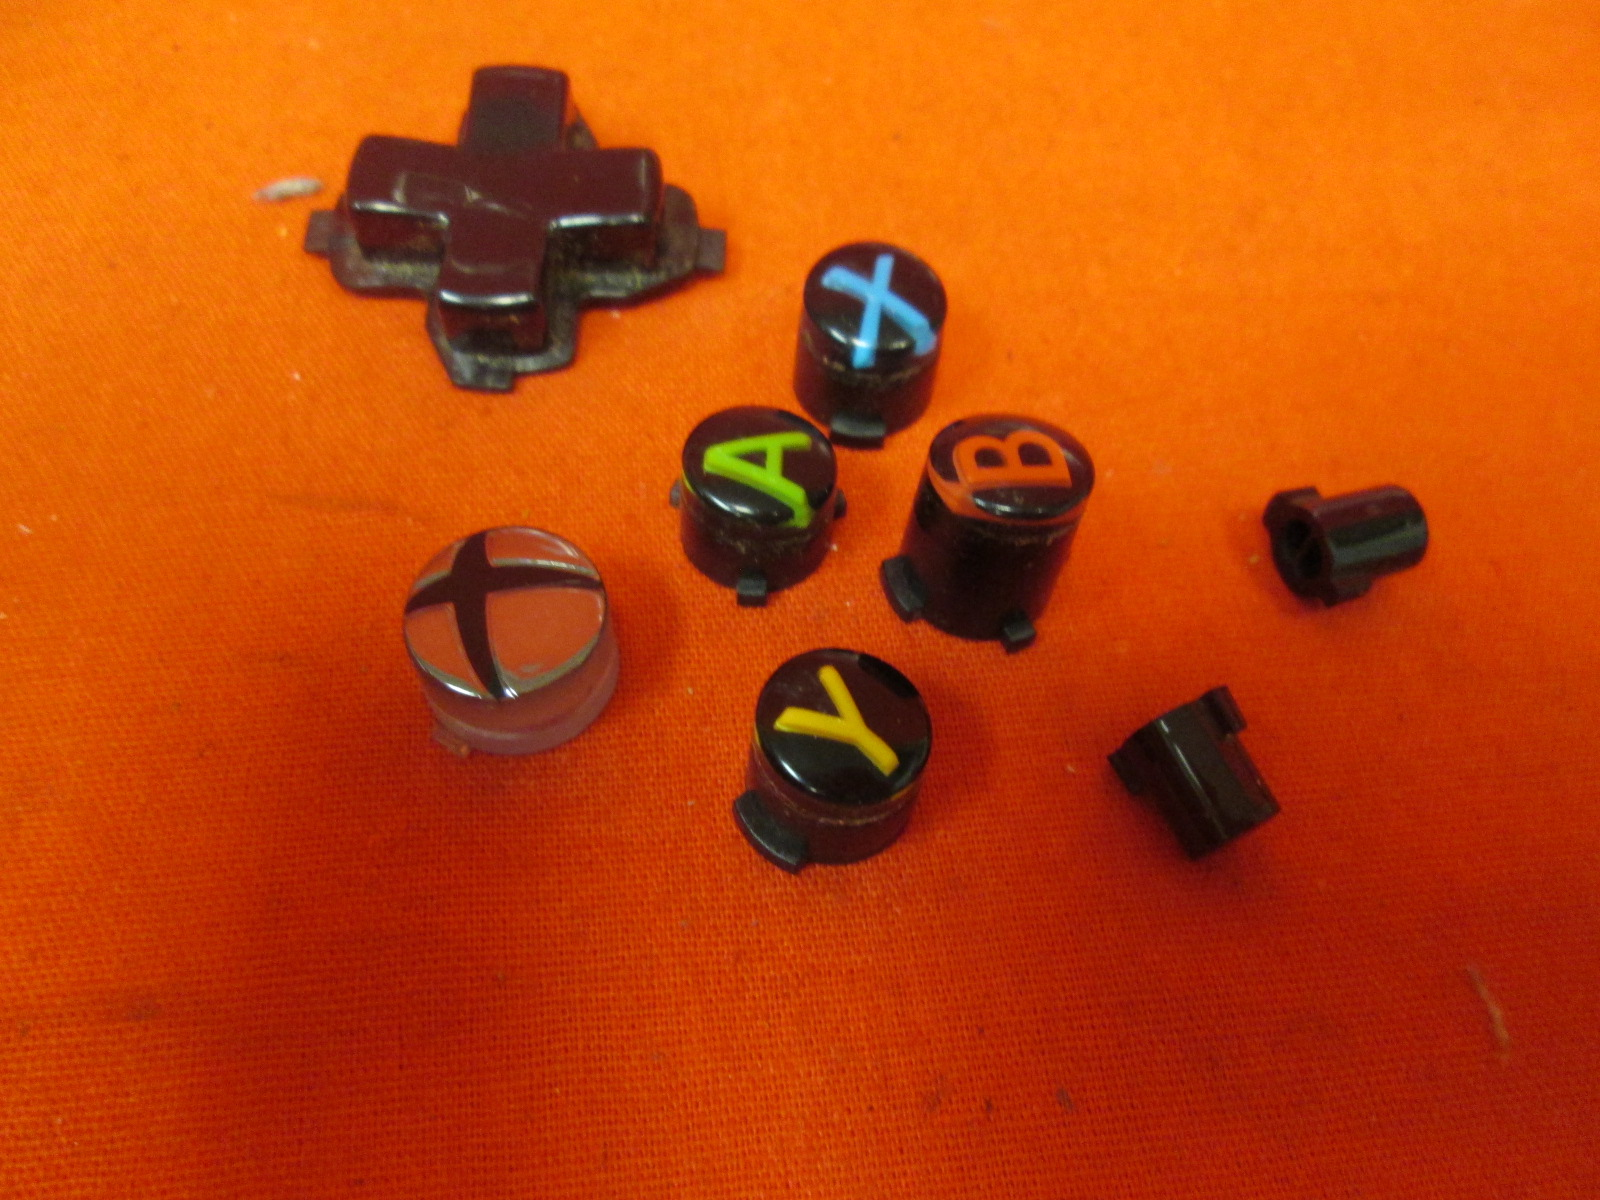 Replacement Microsoft OEM Button Set For Xbox One Controller